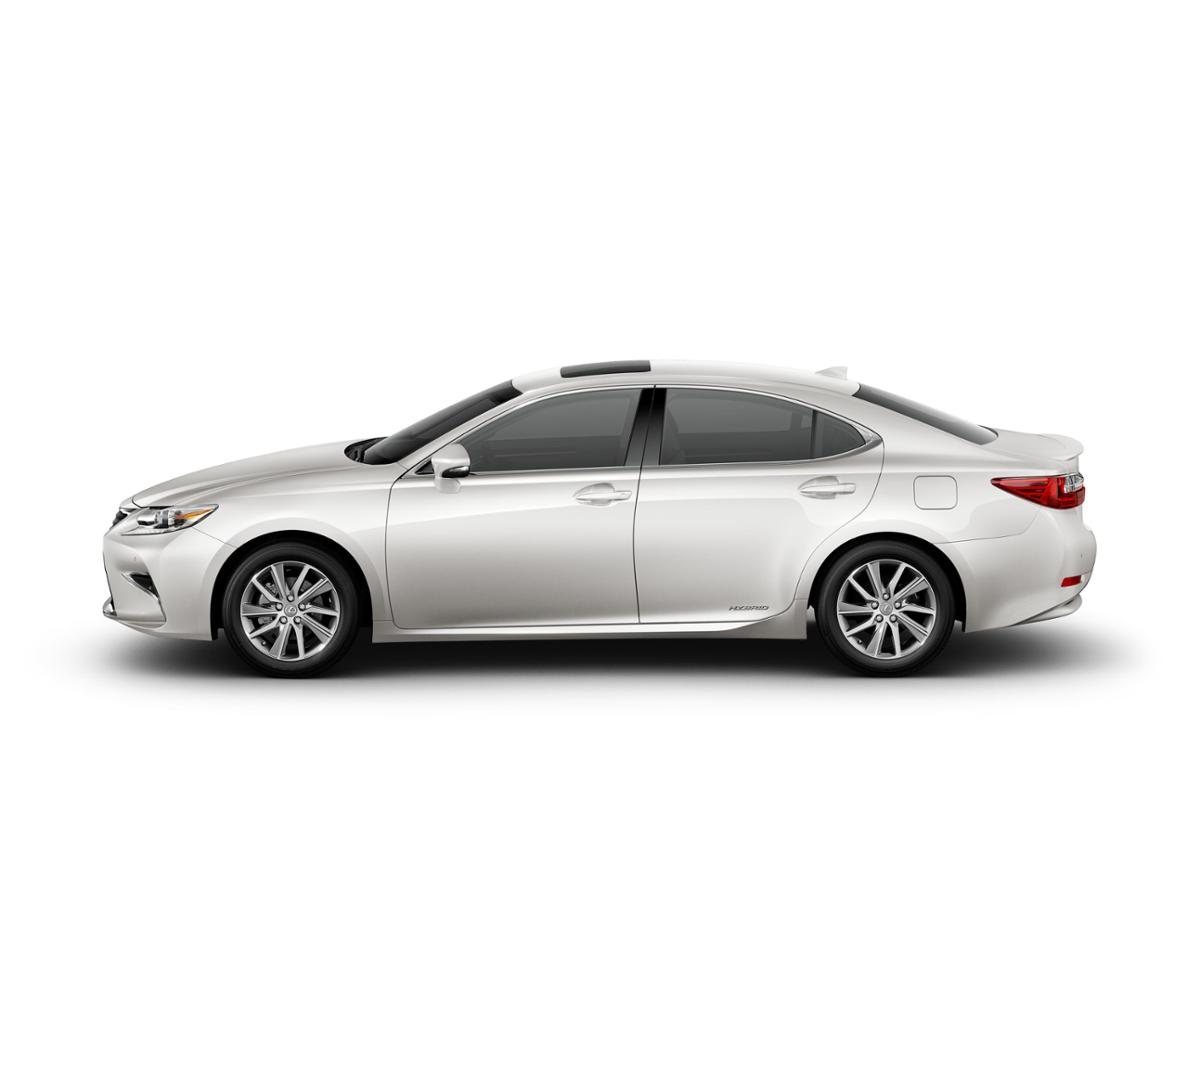 2017 Lexus ES 300h Vehicle Photo in Henderson, NV 89011